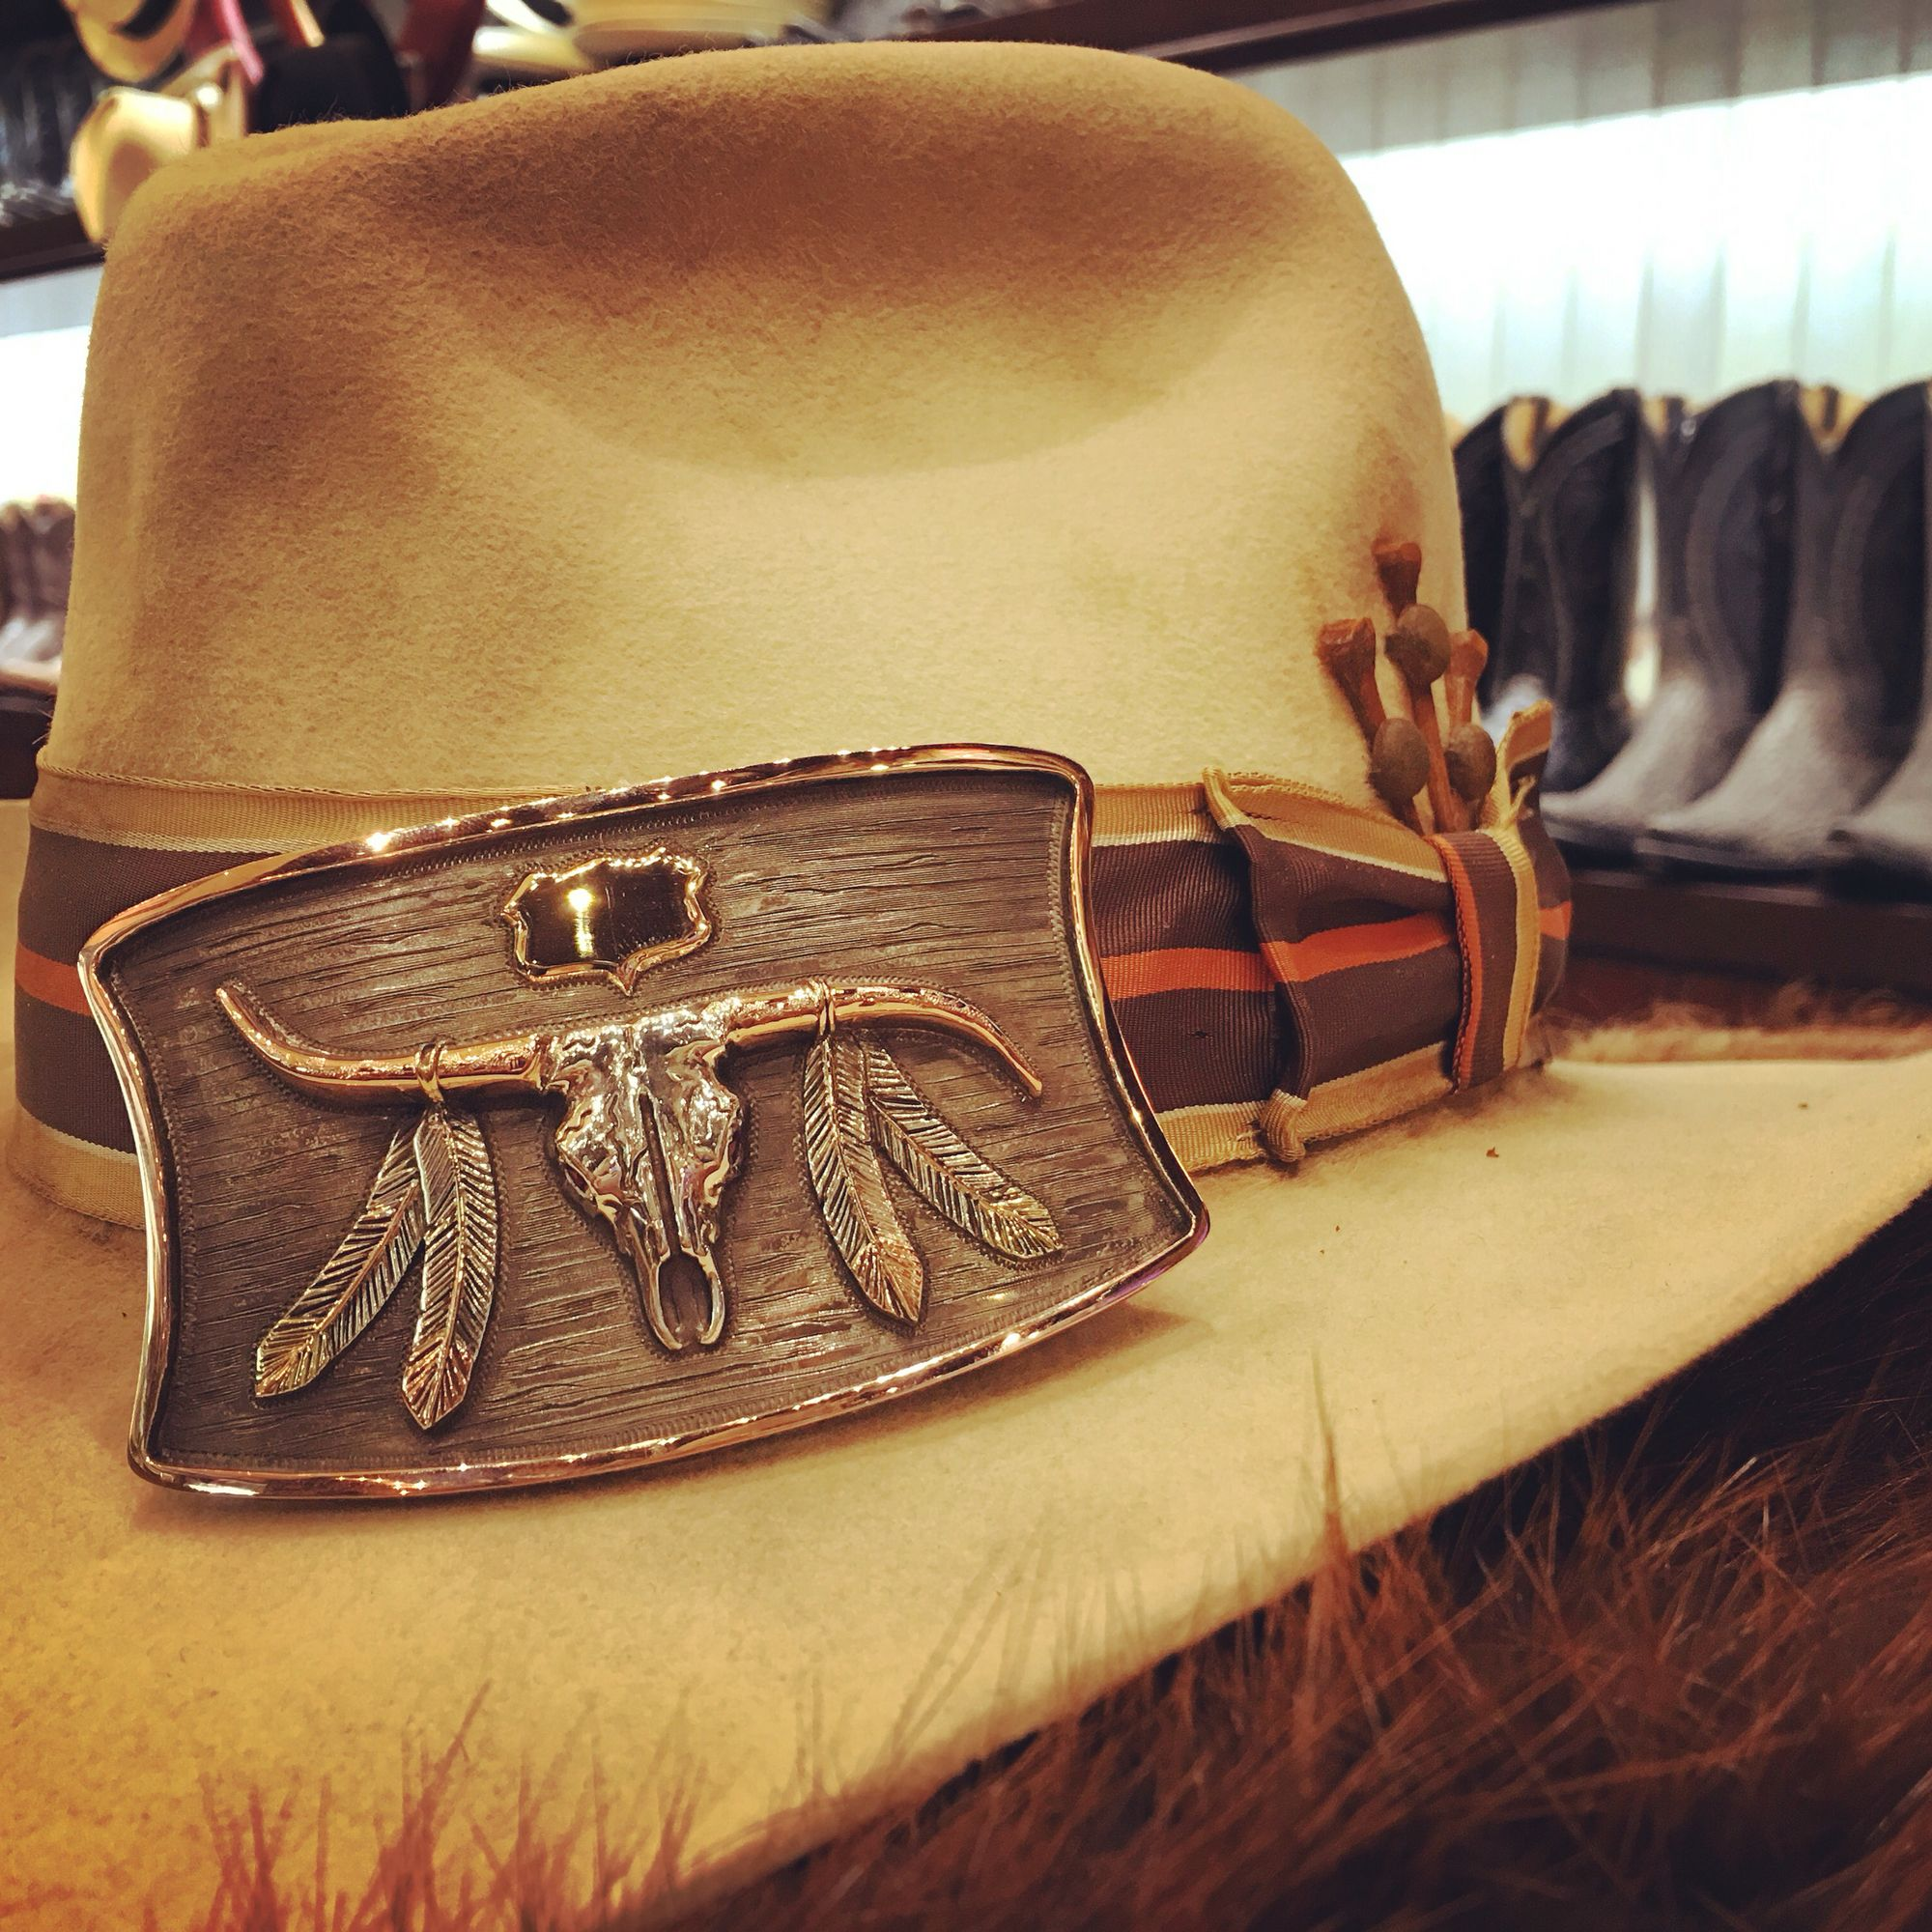 b595ddb9a Kemo sabe grit cow hair phone purse en 2019 | Western Belt Buckles